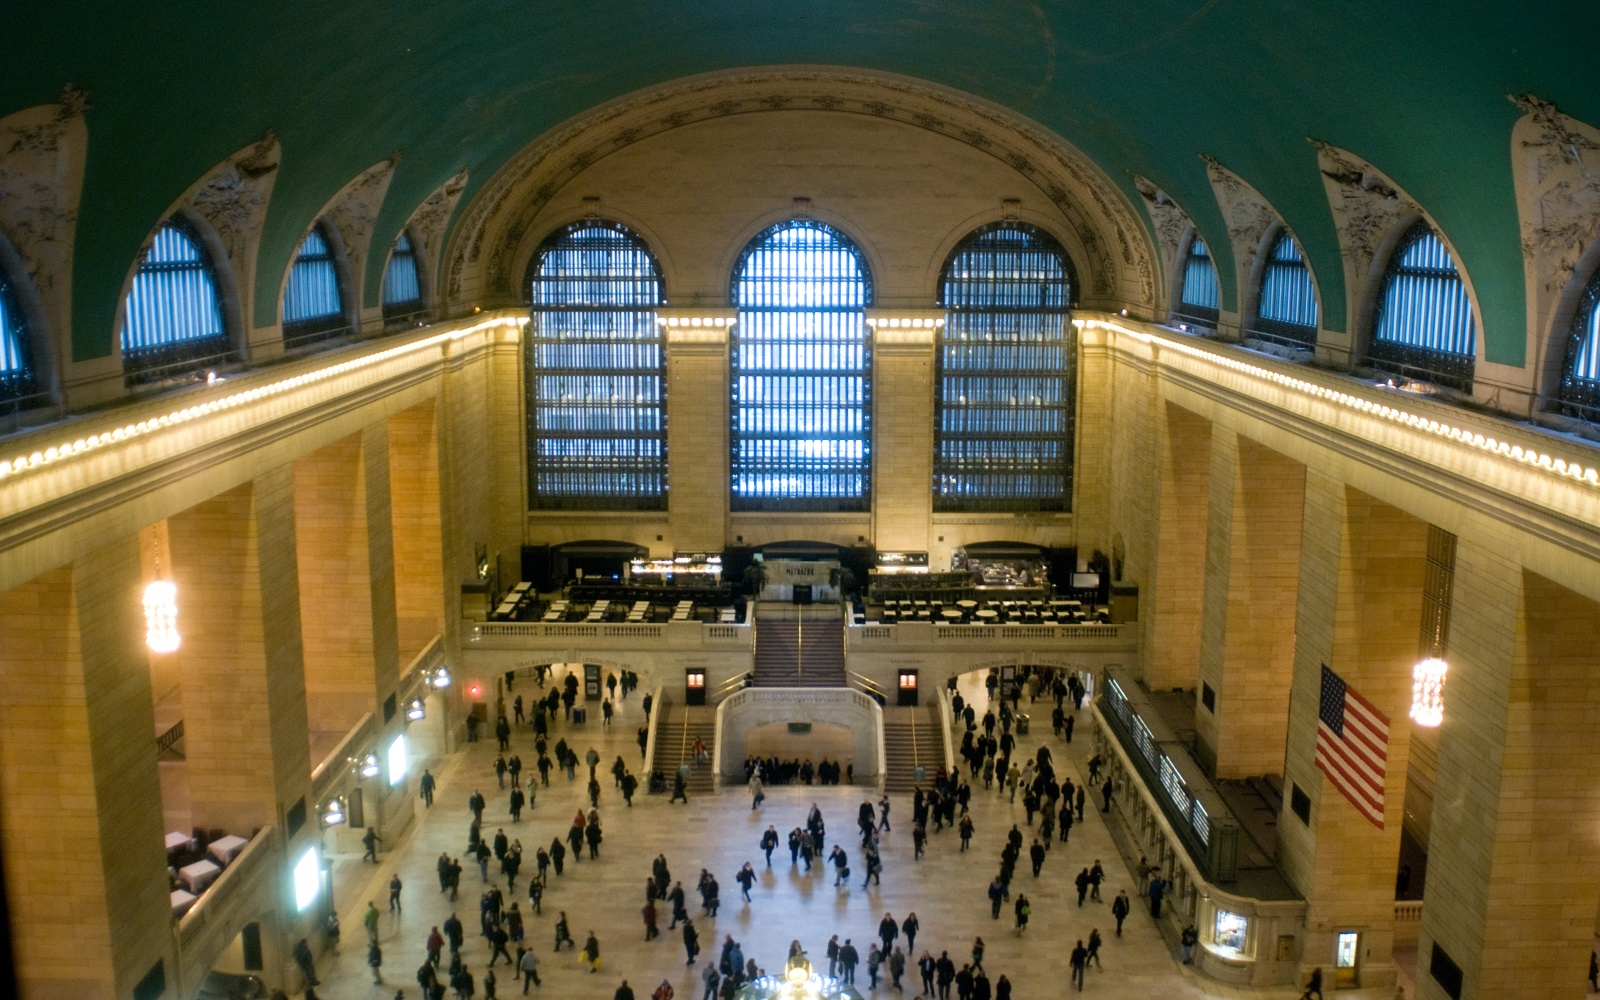 201108-w-beautifultrainstation-grandcentral